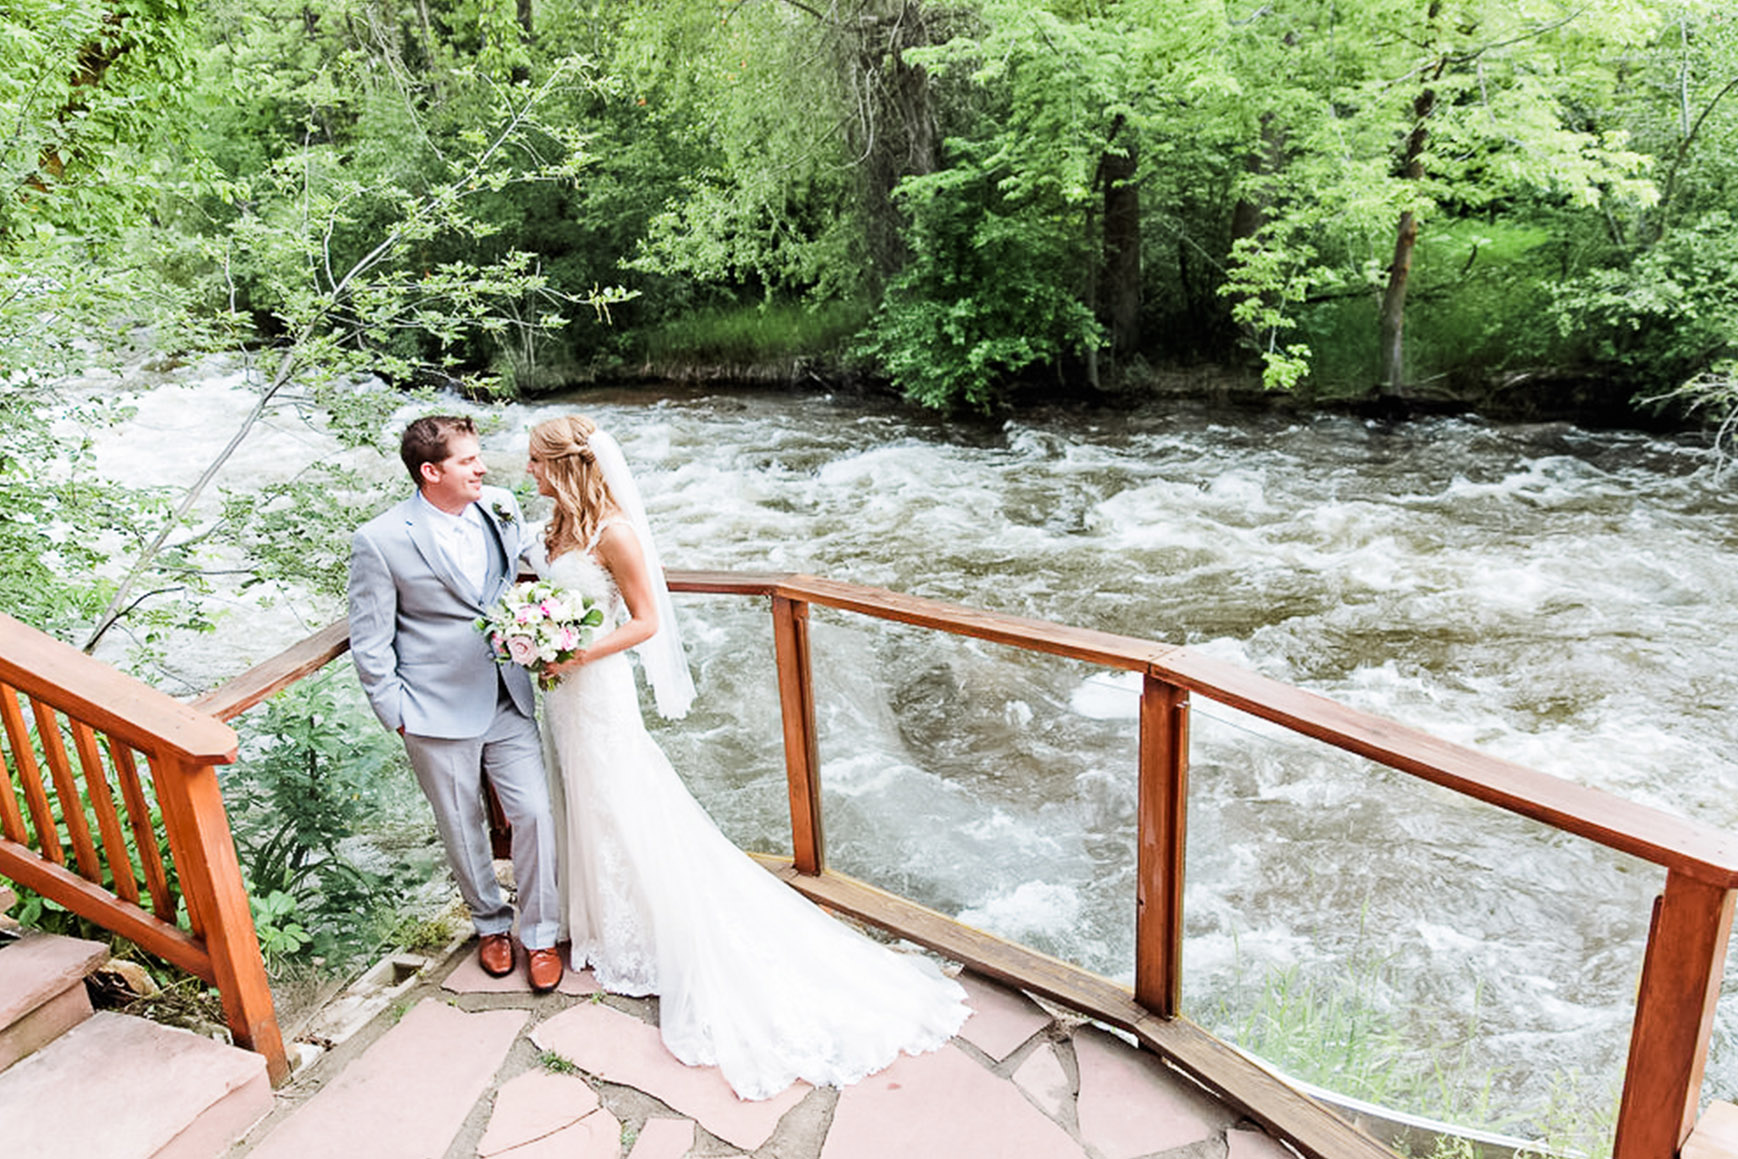 Couple Standing by Creek  - Boulder Creek - Boulder, Colorado - Boulder County - Wedgewood Weddings